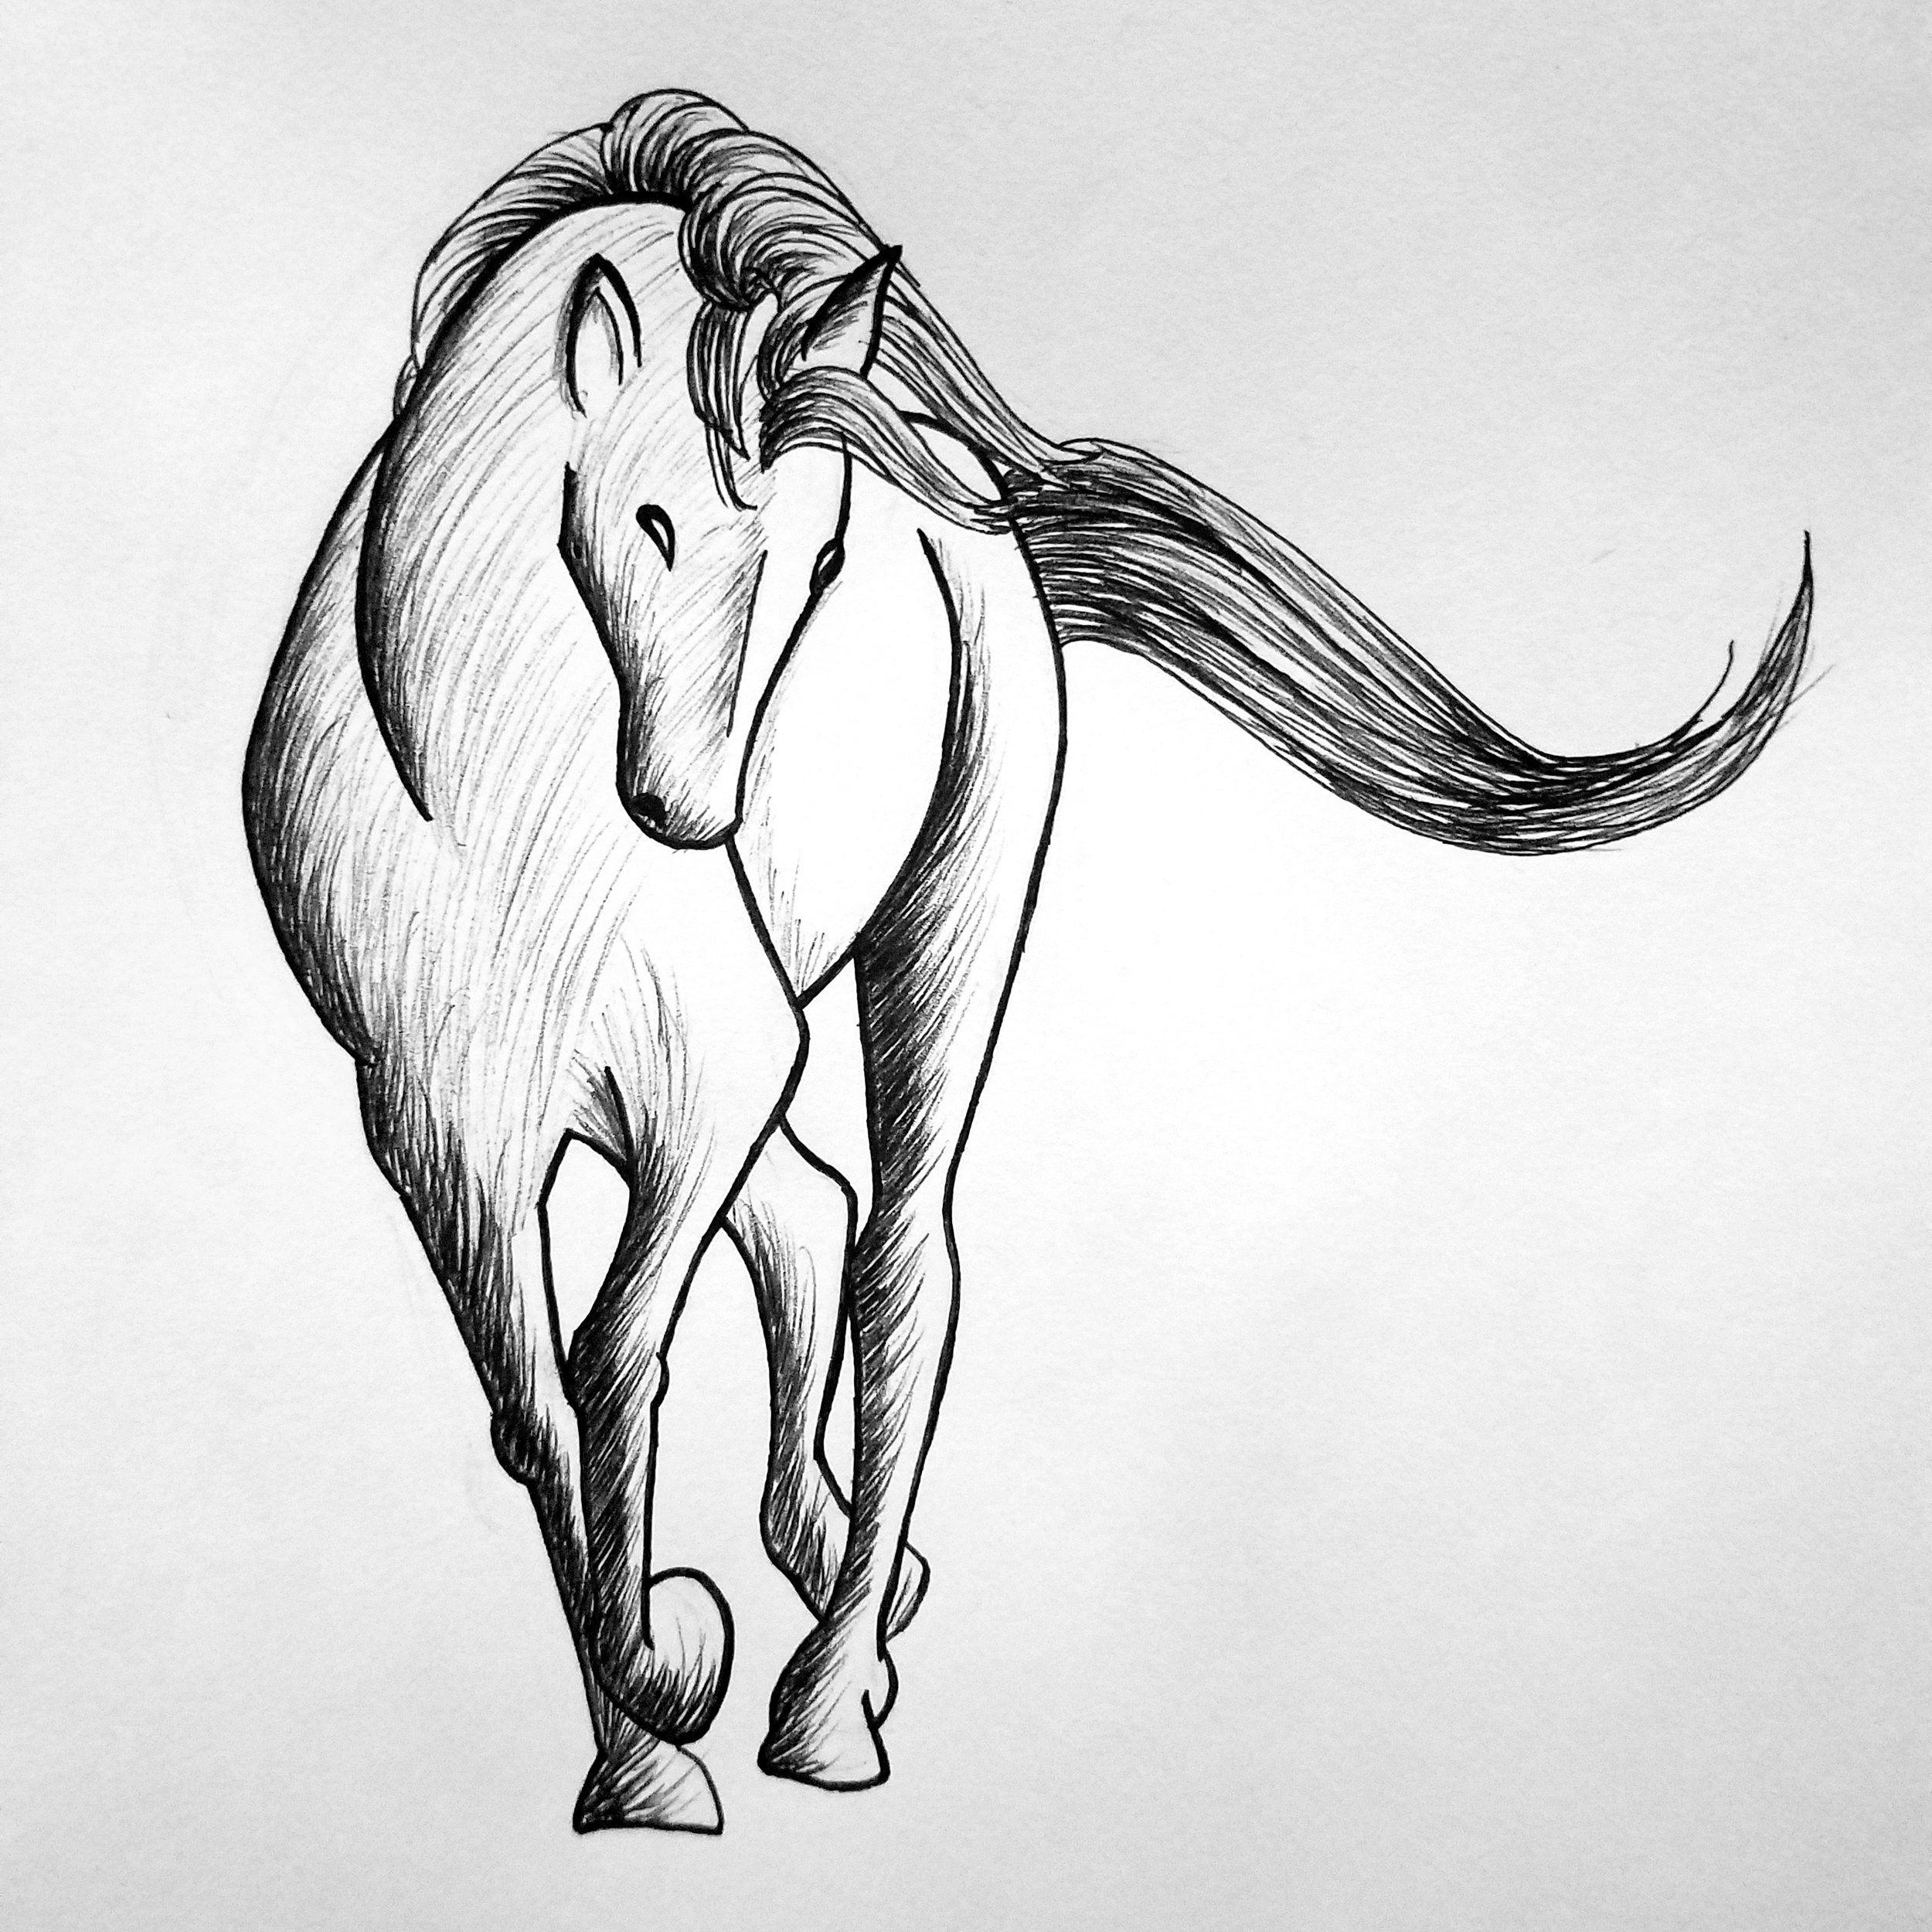 Day 8: Horse